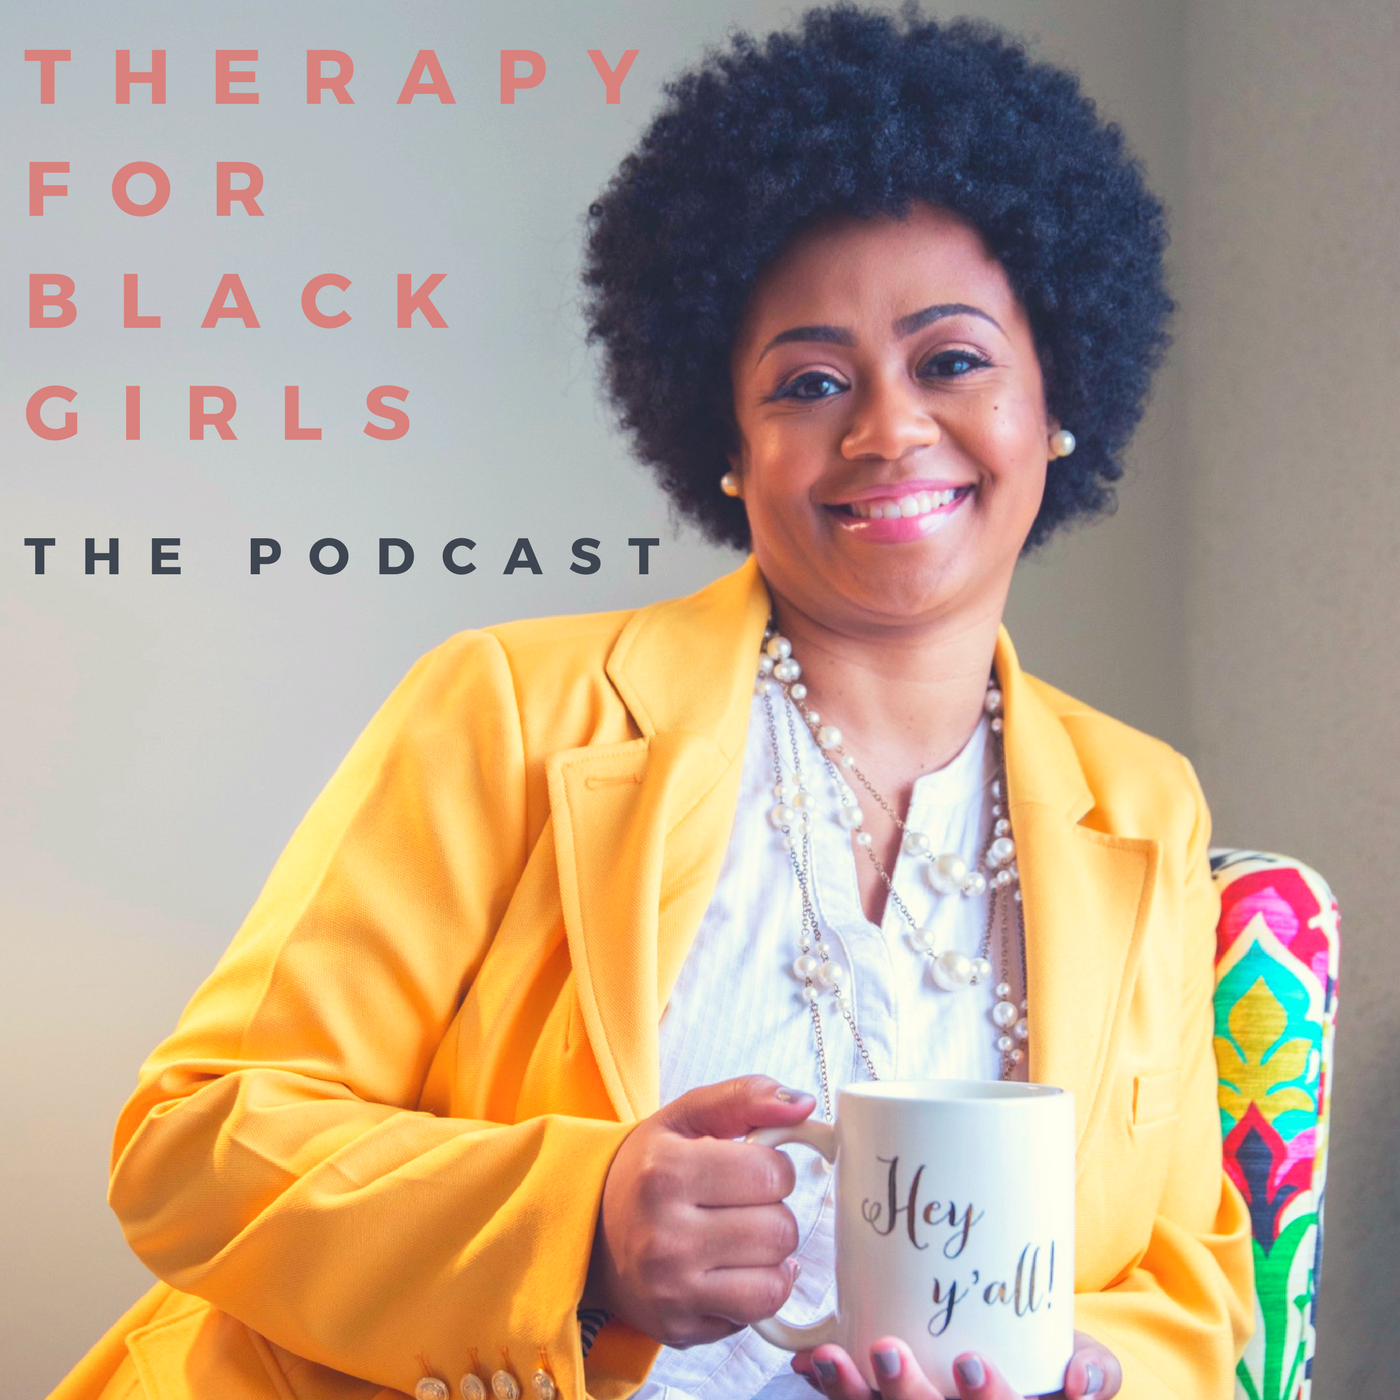 Therapy for Black Girls - 7 Inspiring Podcasts by Women of Color | Balanced Black Girl